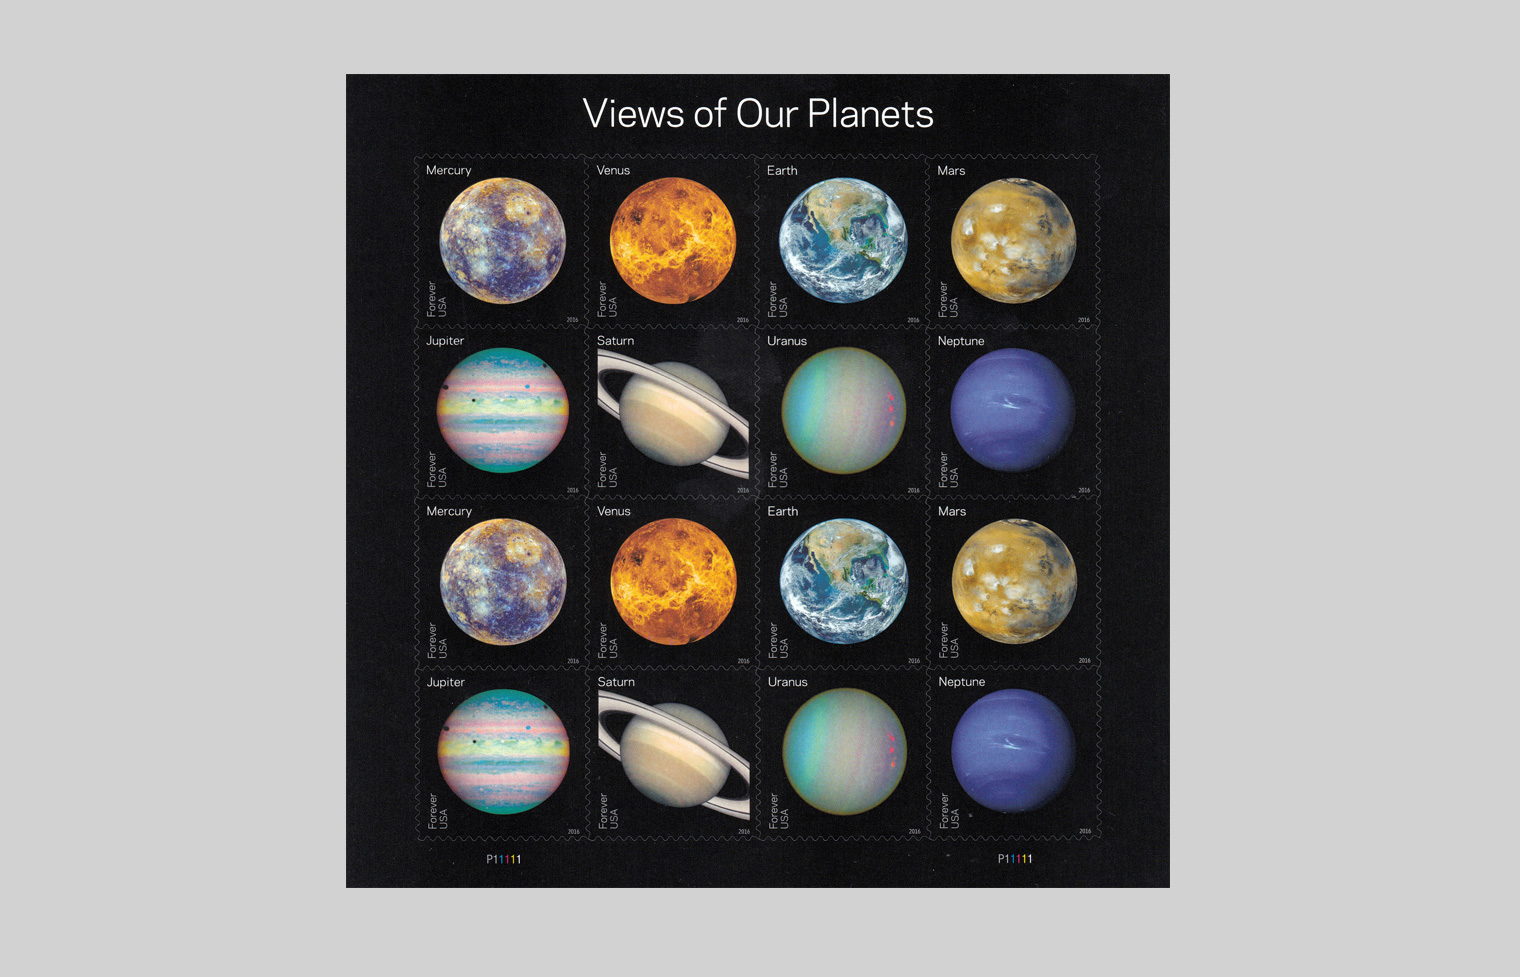 Views of Our Planets stamp sheet.